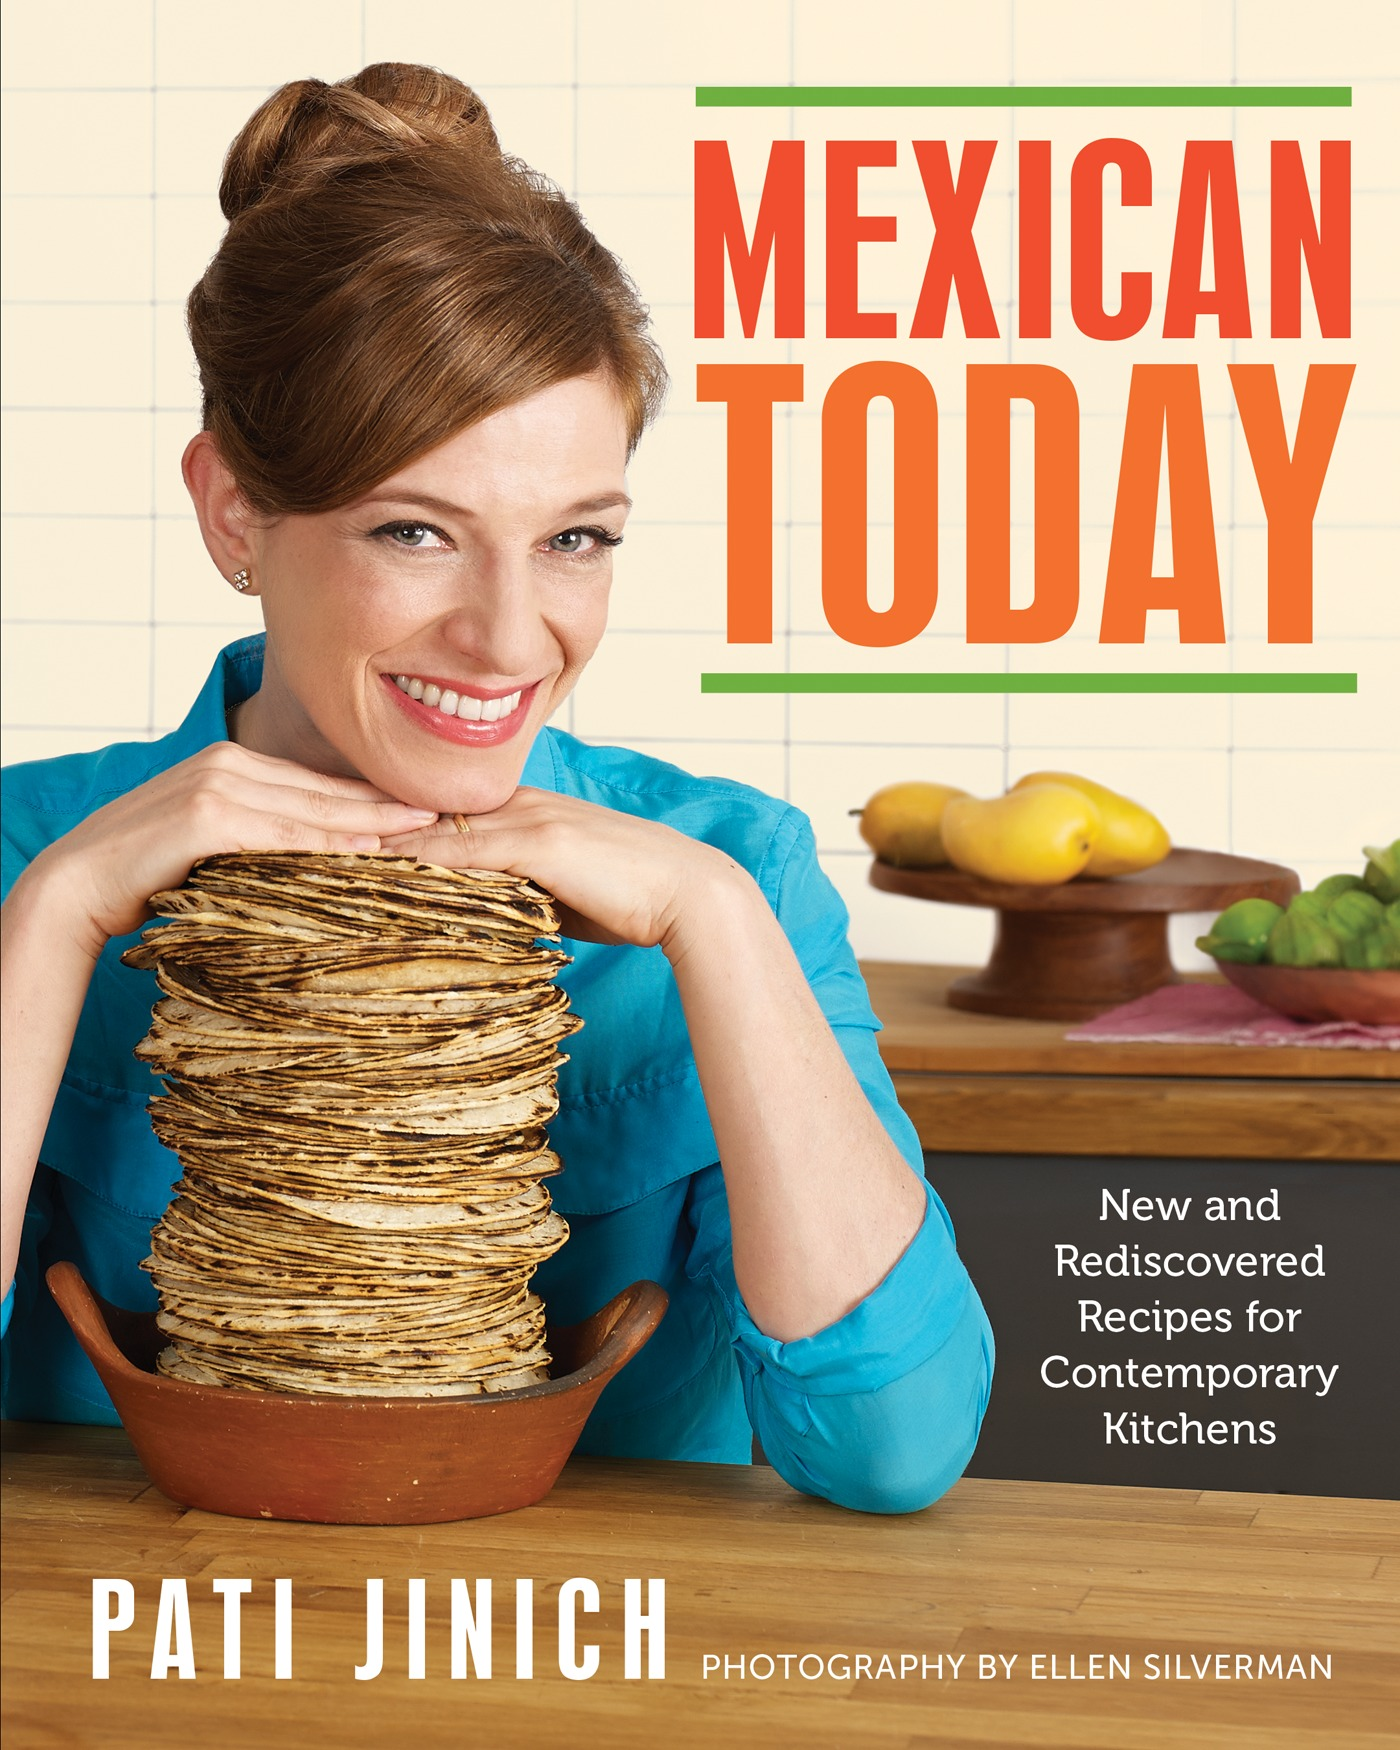 Pati Jinich's 'Mexican Today